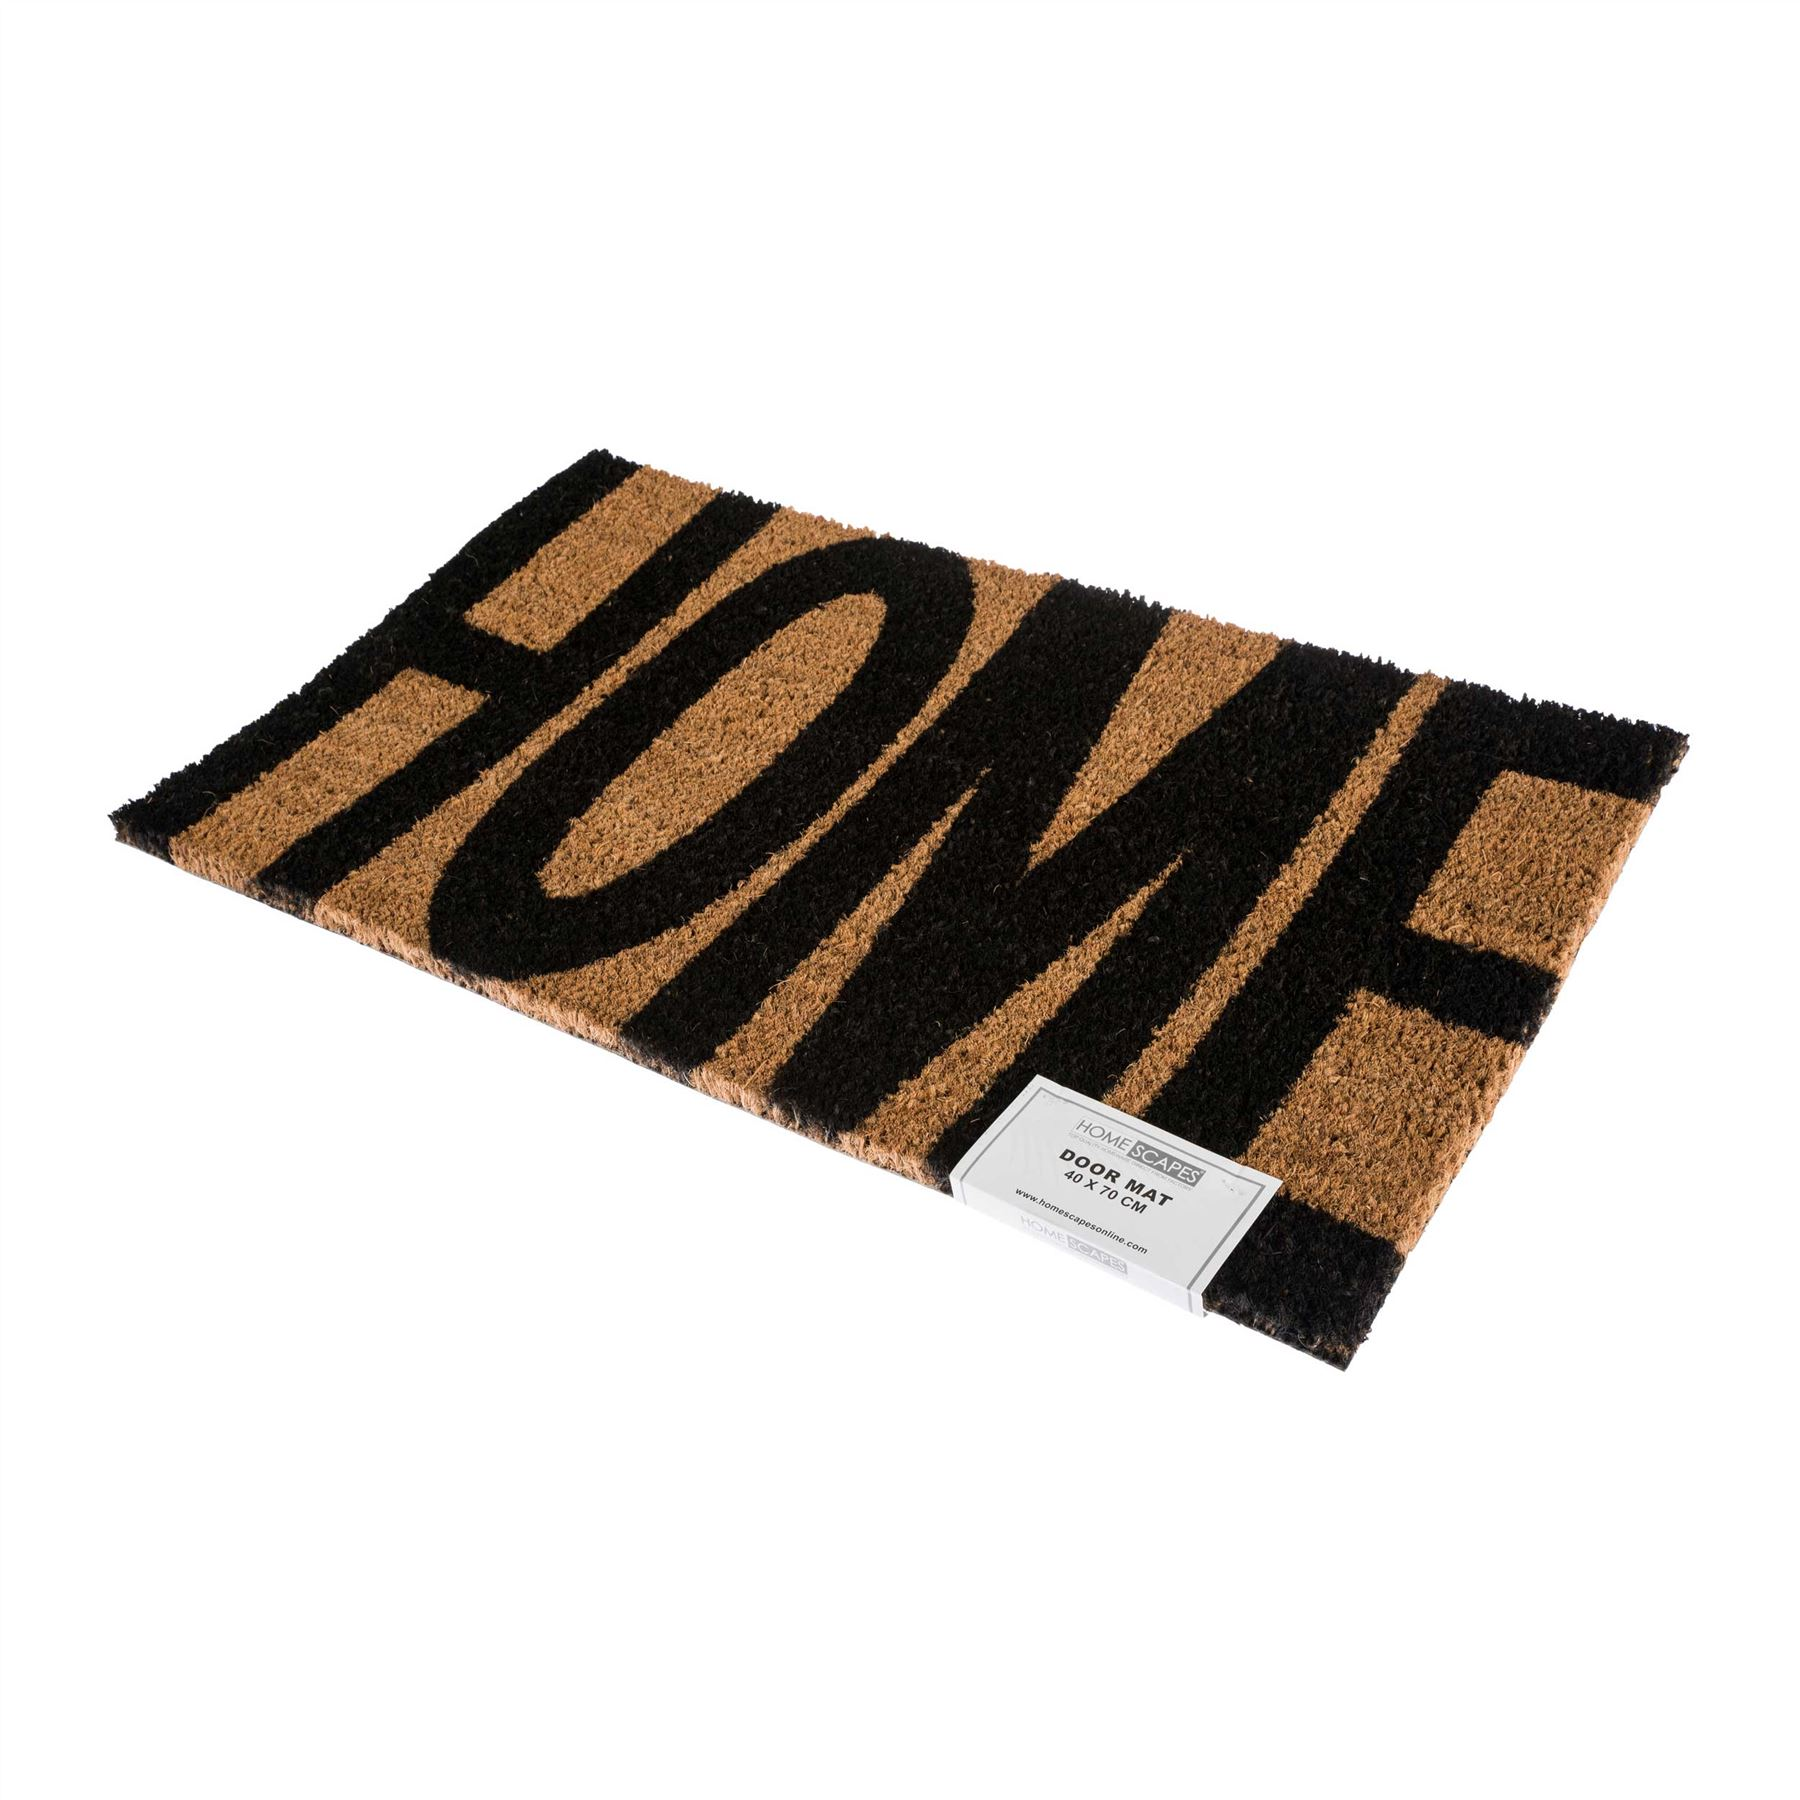 Novelty natural coir door mat heavy duty indoor outdoor floor entrance doormats ebay - Novelty welcome mats ...